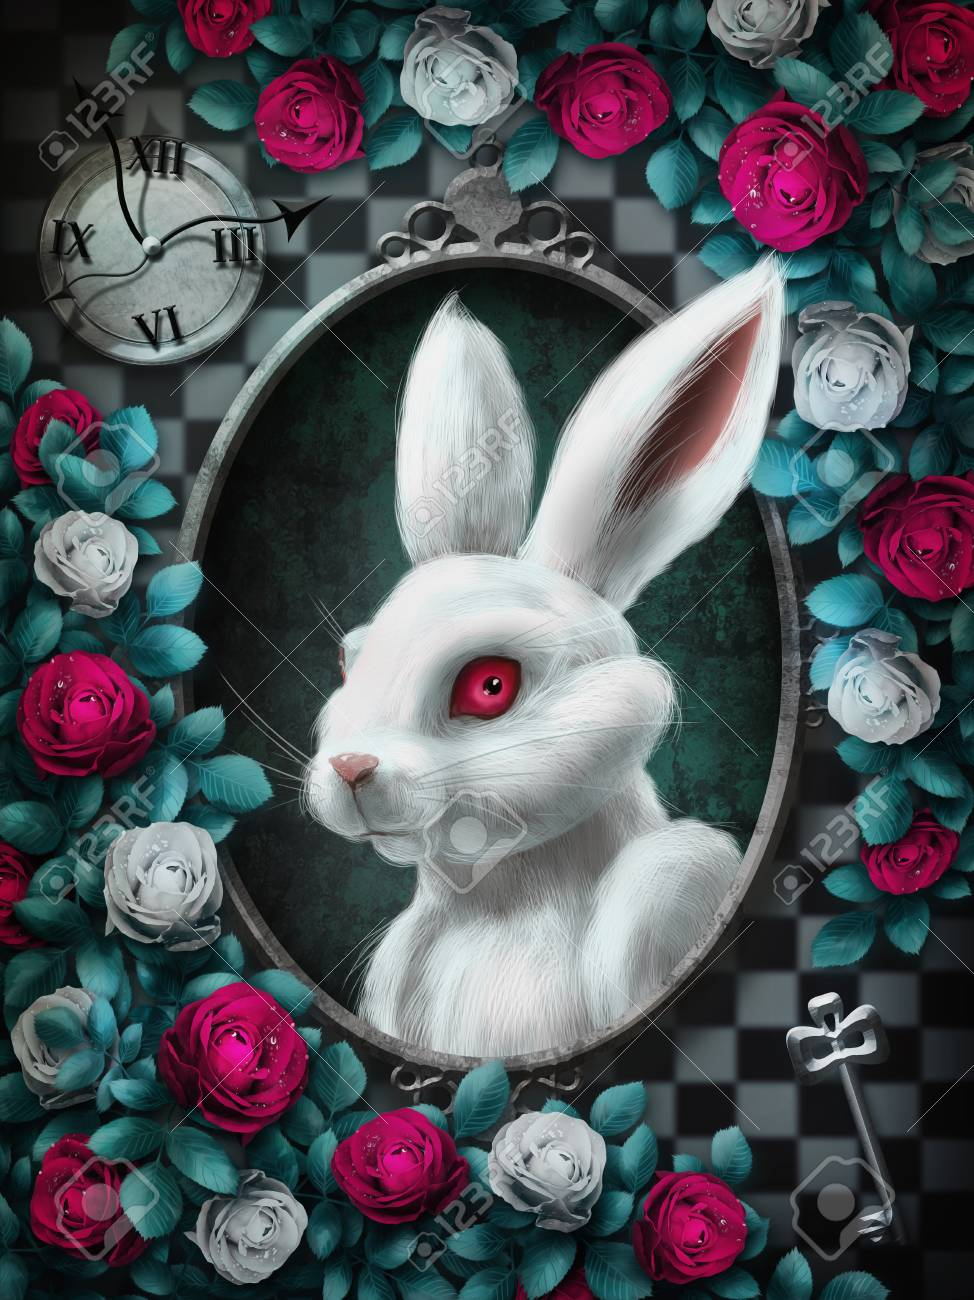 Alice In Wonderland White Rabbit From Alice In Wonderland Portrait